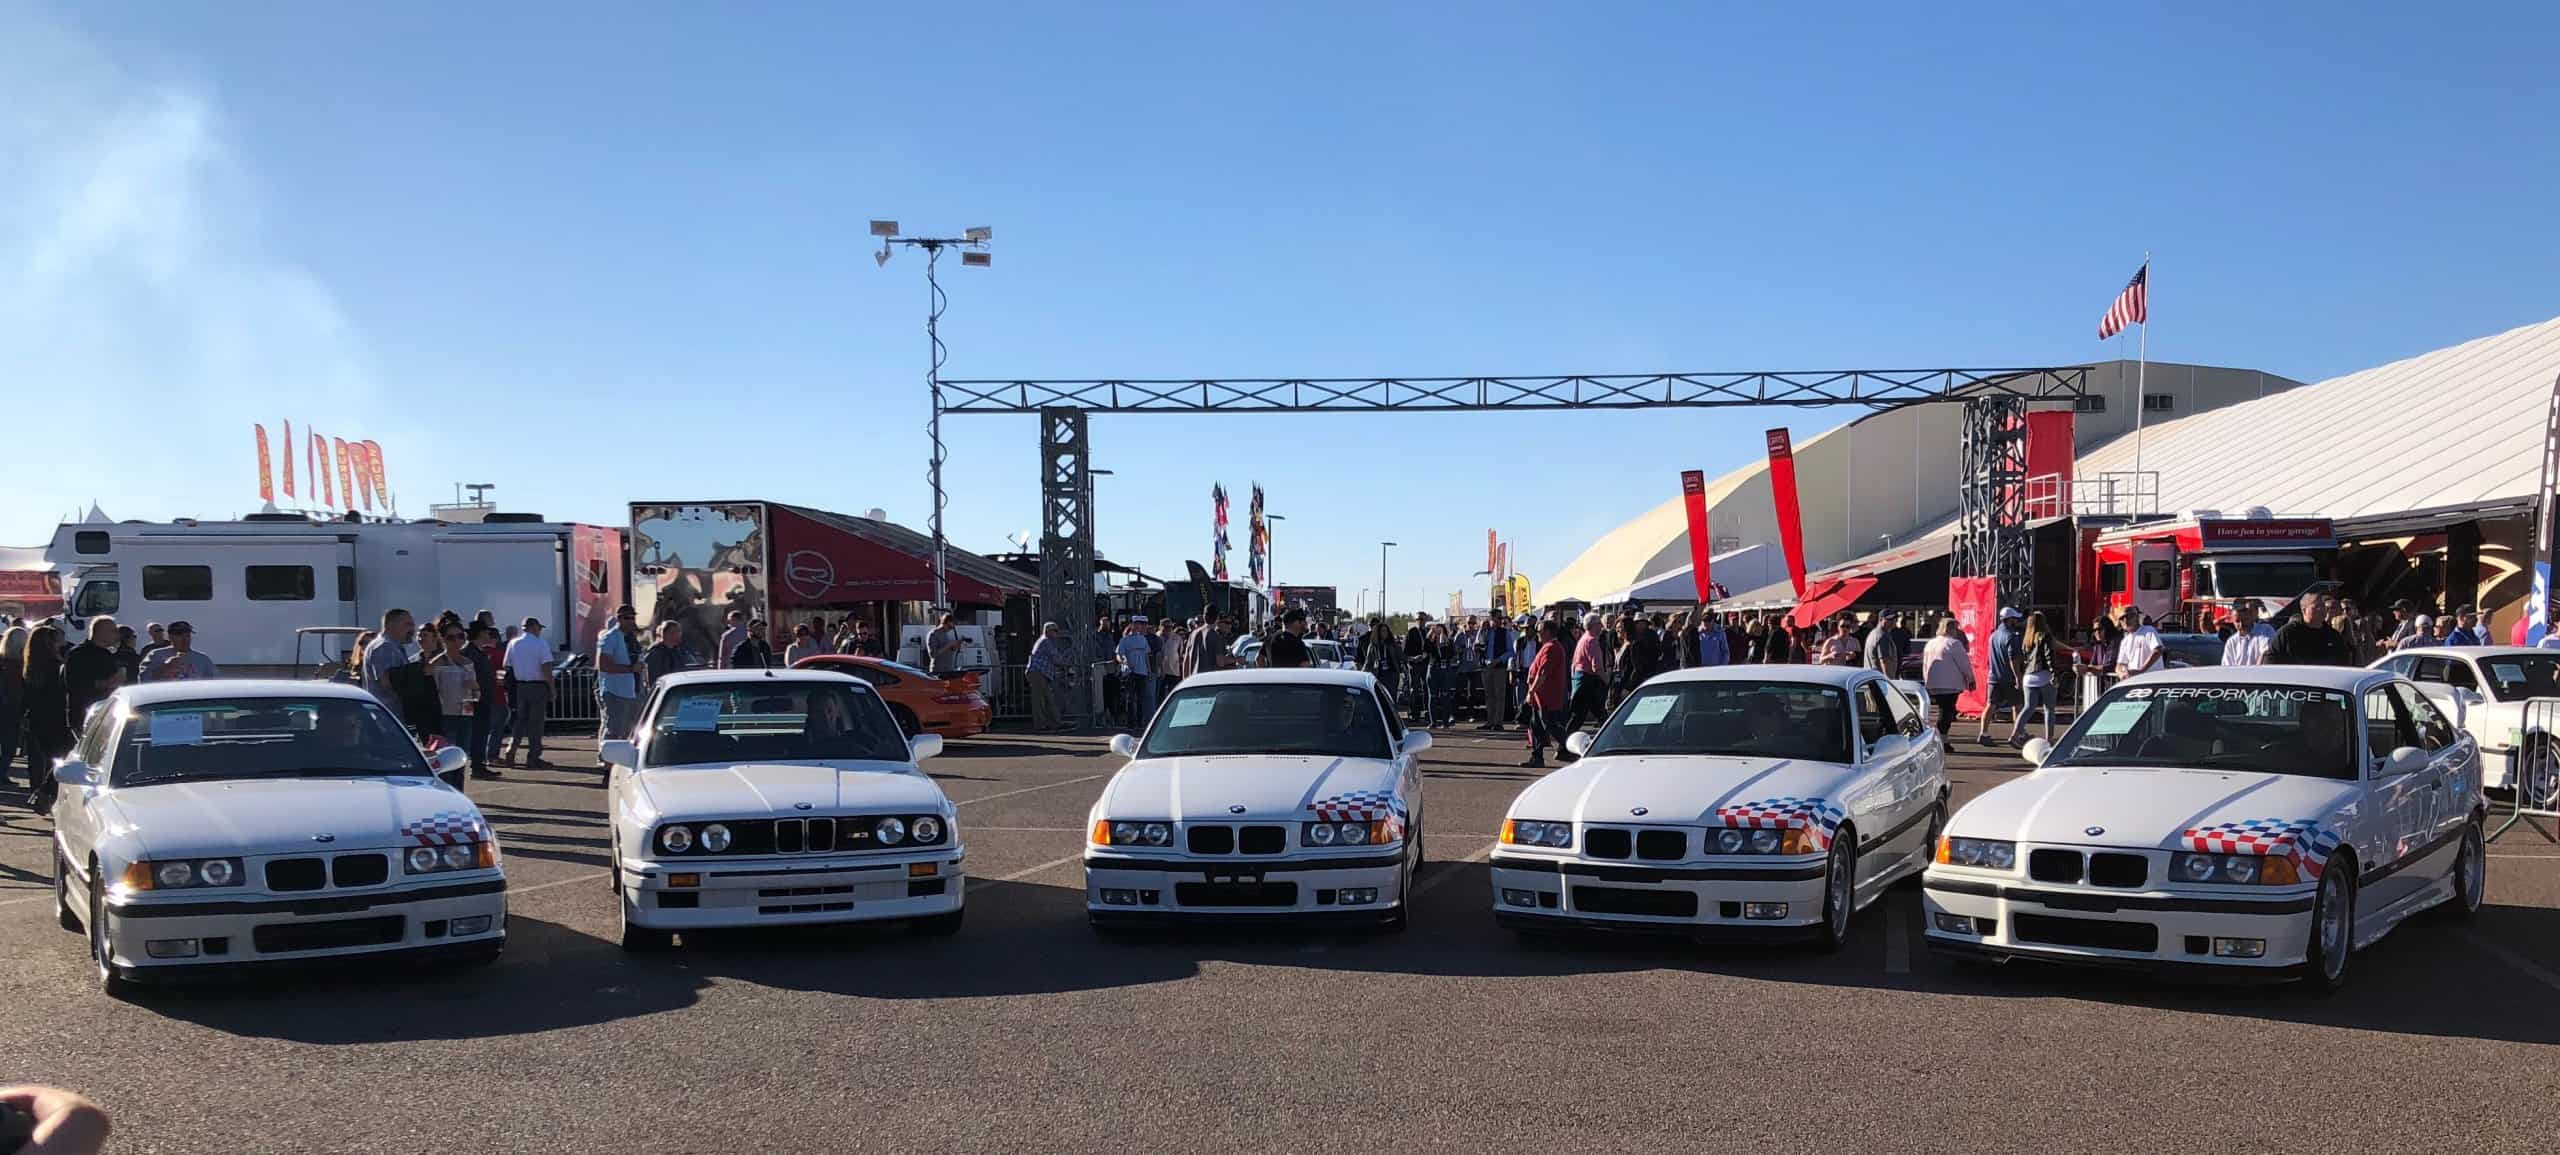 1995 BMW M3 Lightweights owned and collected by Paul Walker | Jared Costello photo